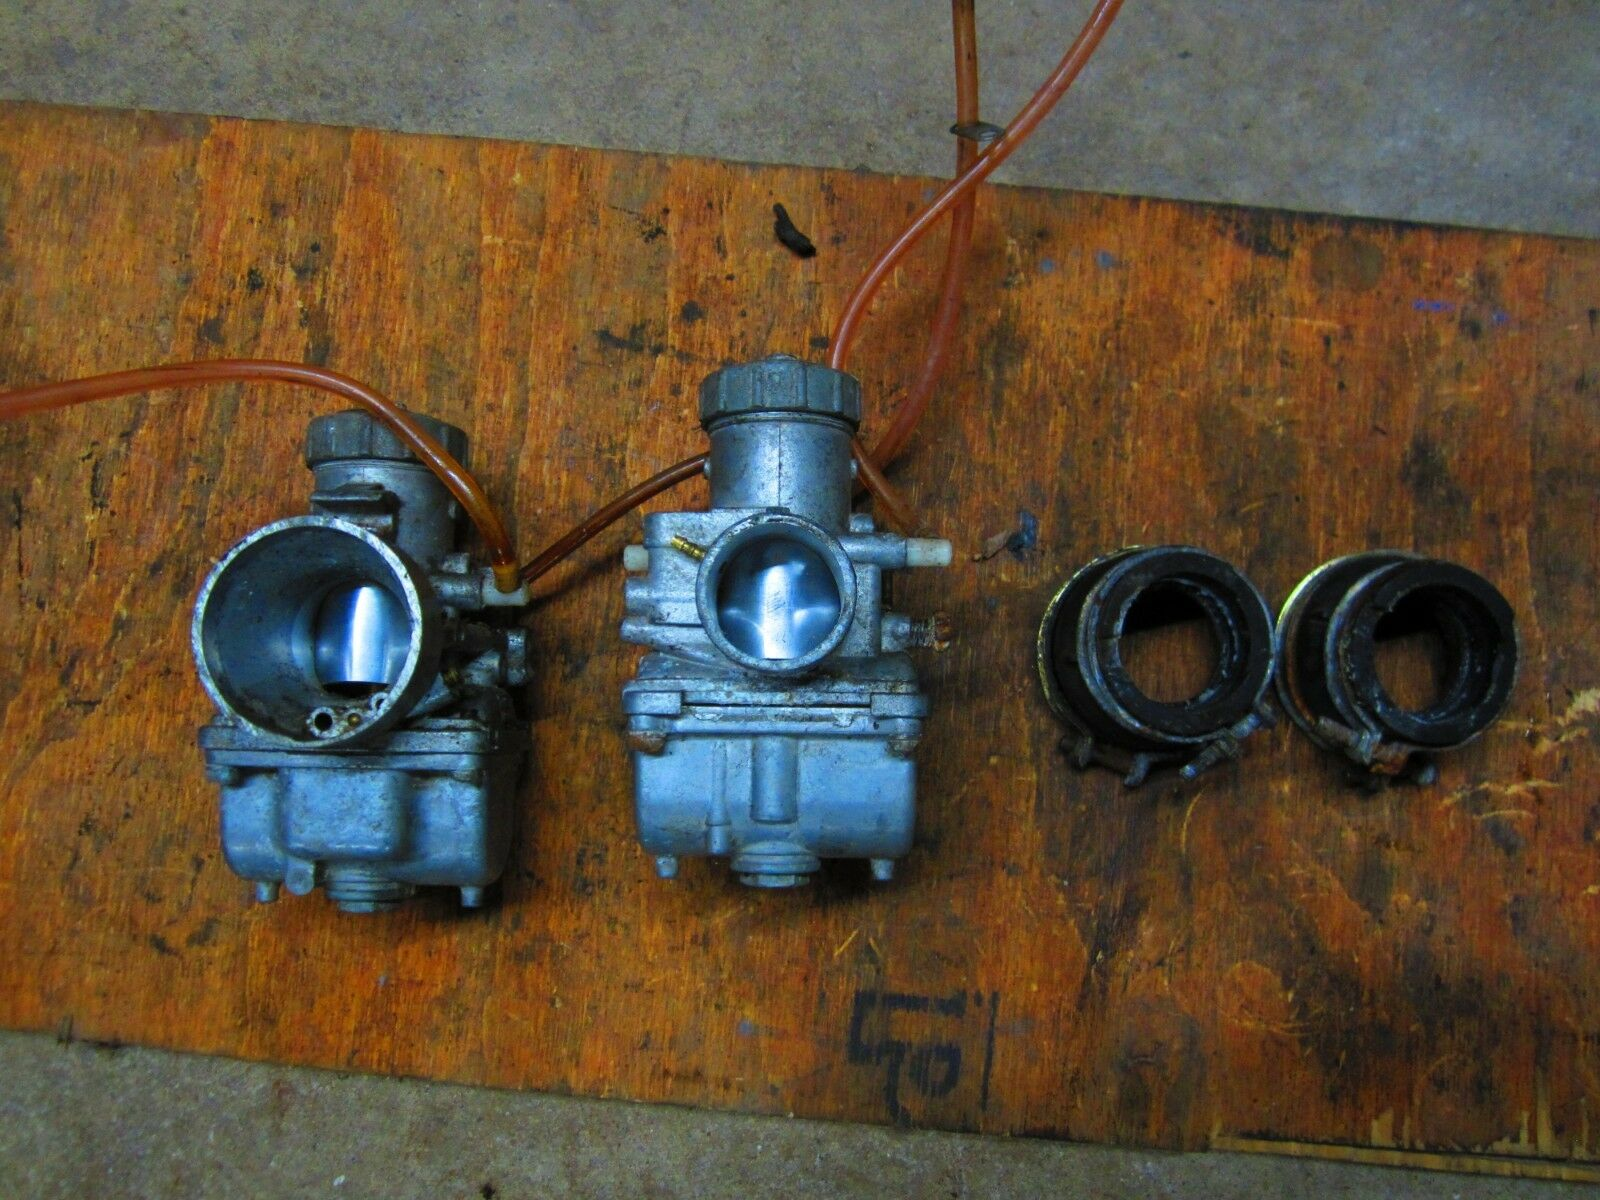 1994 SKI DOO FORMULA MX 470 CARBURETORS W FLANGE 57003940,403116600